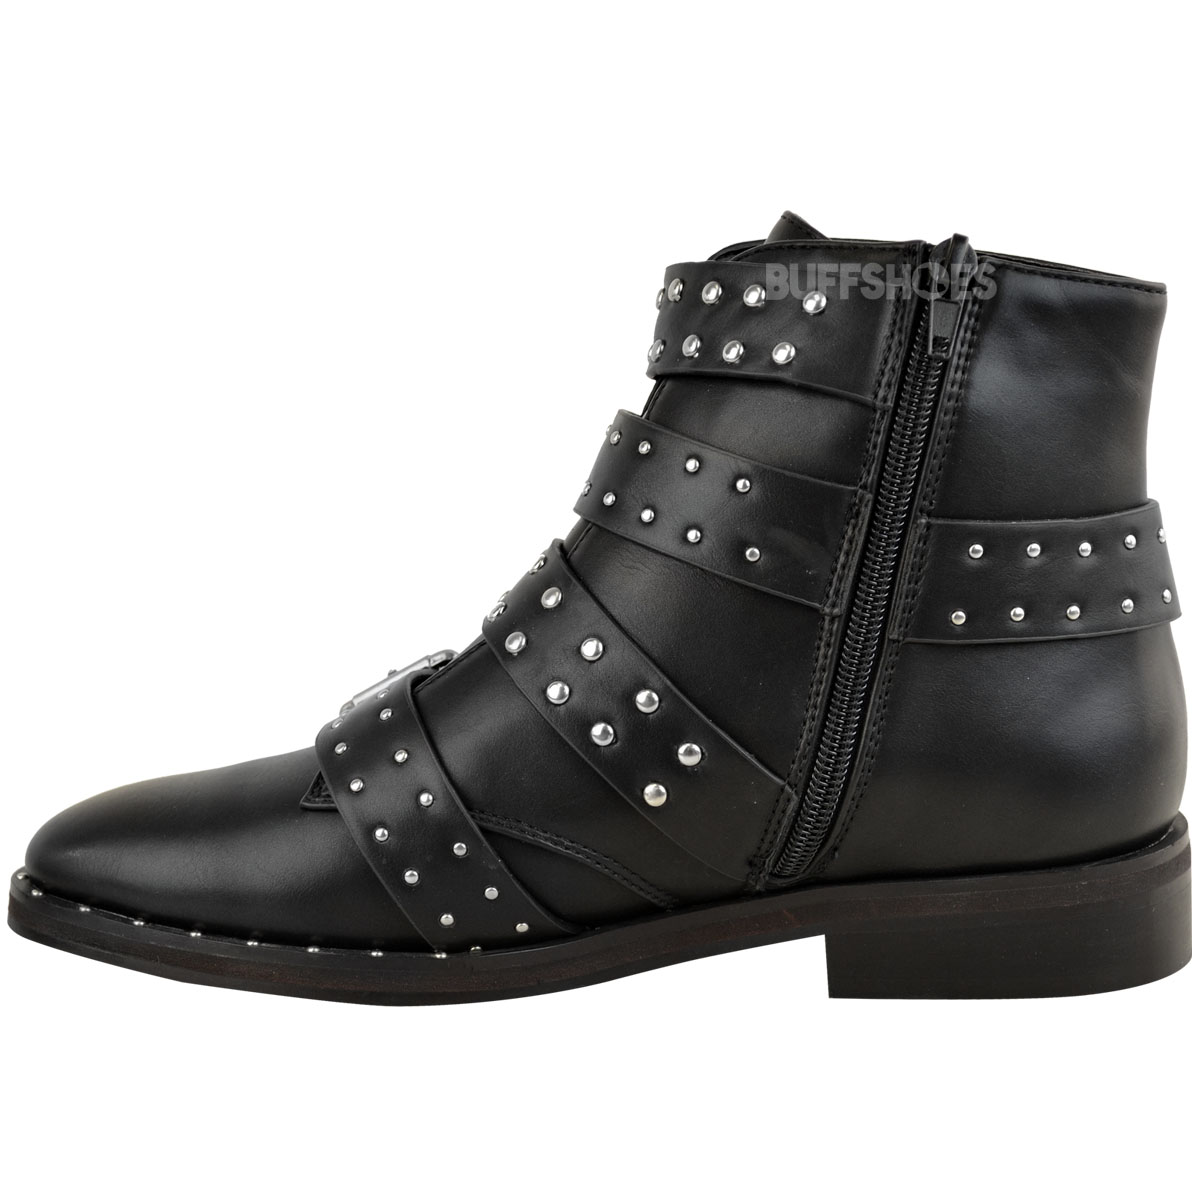 1776b07e310 Details about Womens Ladies Studded Flat Ankle Boots Strappy Biker Buckles  Amelia New Size